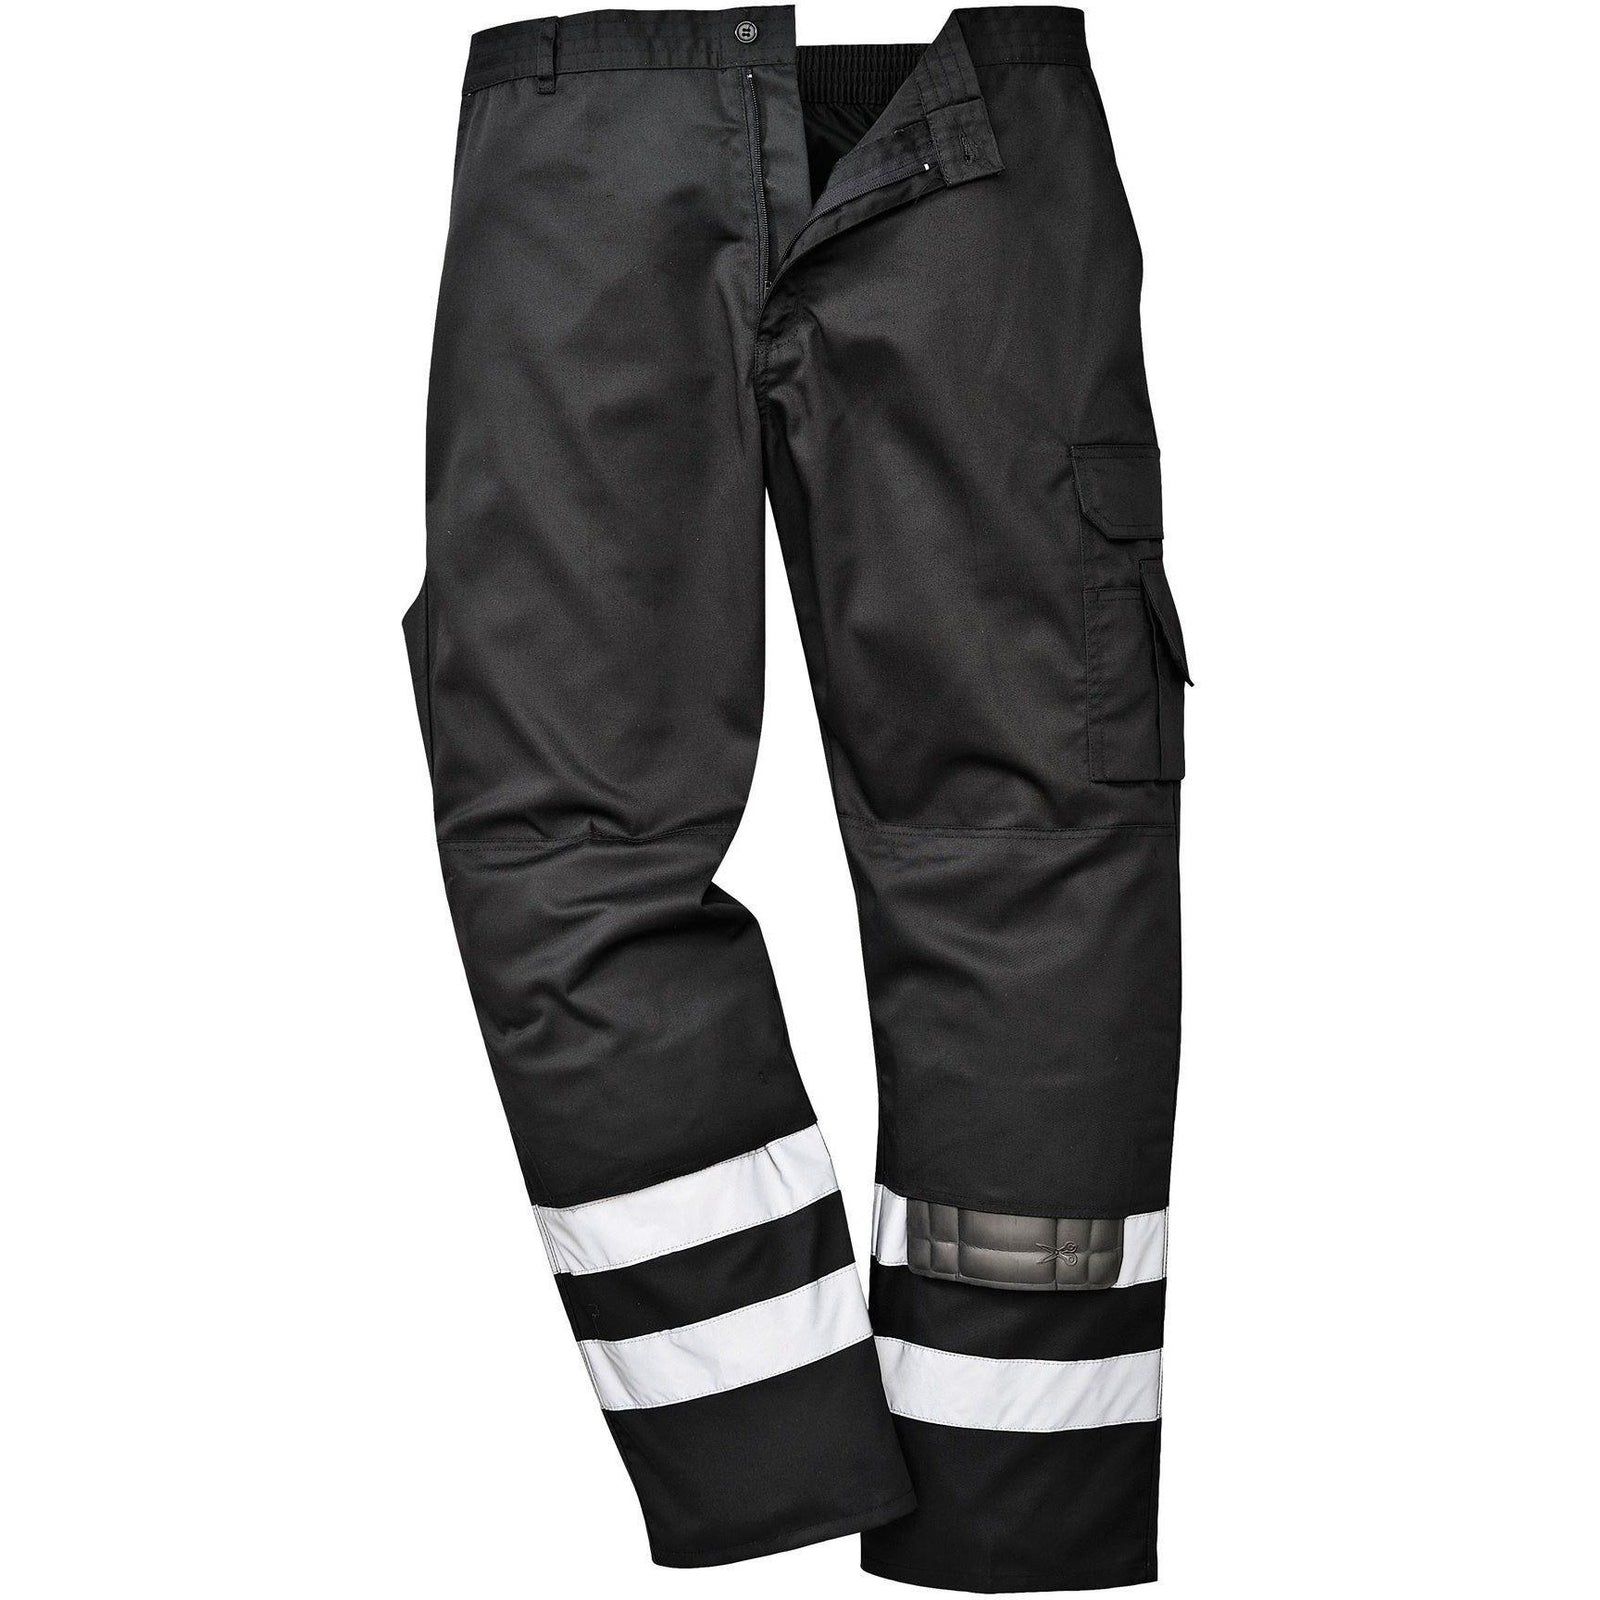 Portwest Iona Safety Combat Trousers S917 - reid outdoors